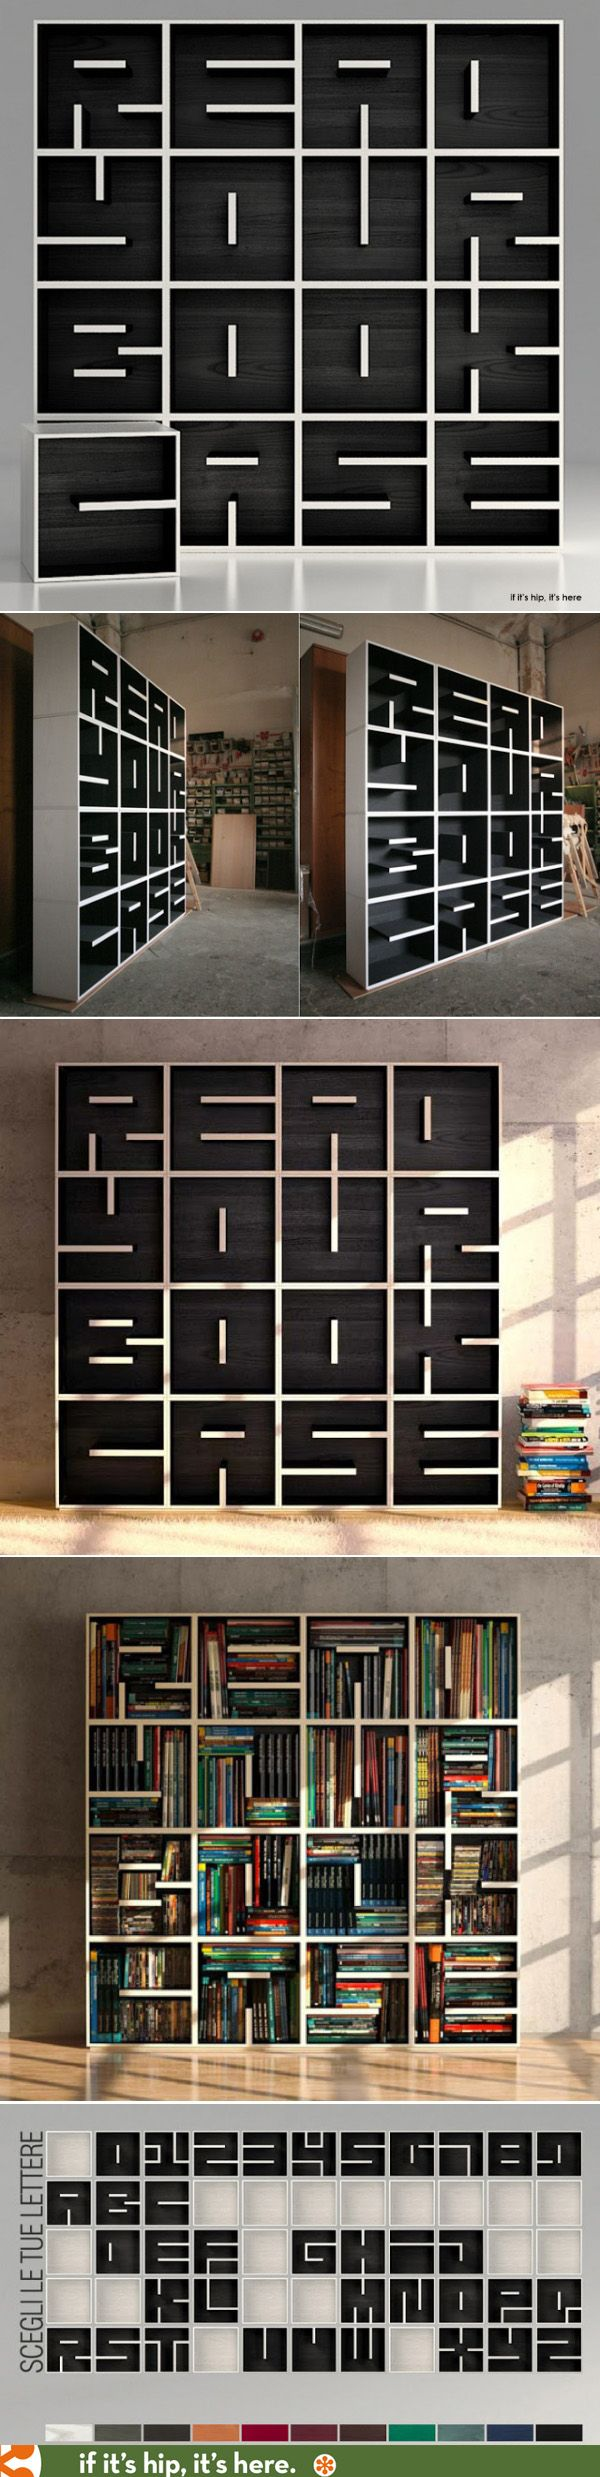 These letter shaped modular storage cubes are awesome.